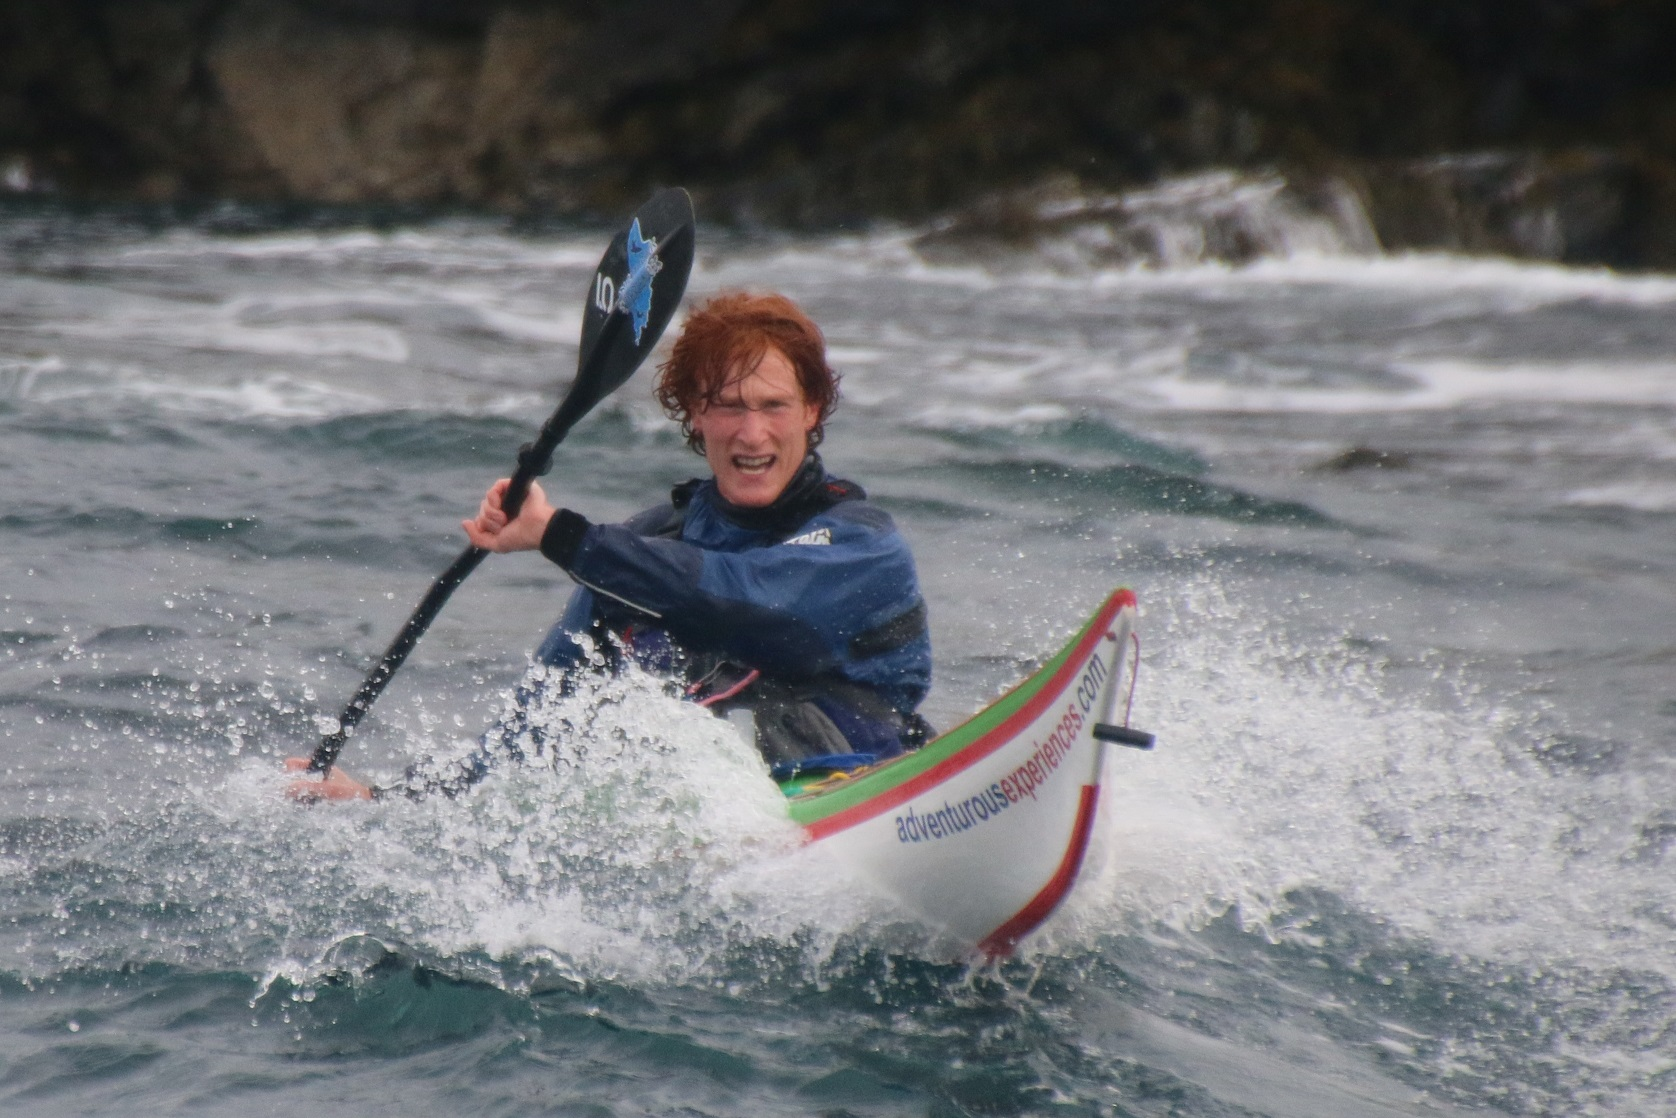 Surfing down a wave with ginger hair